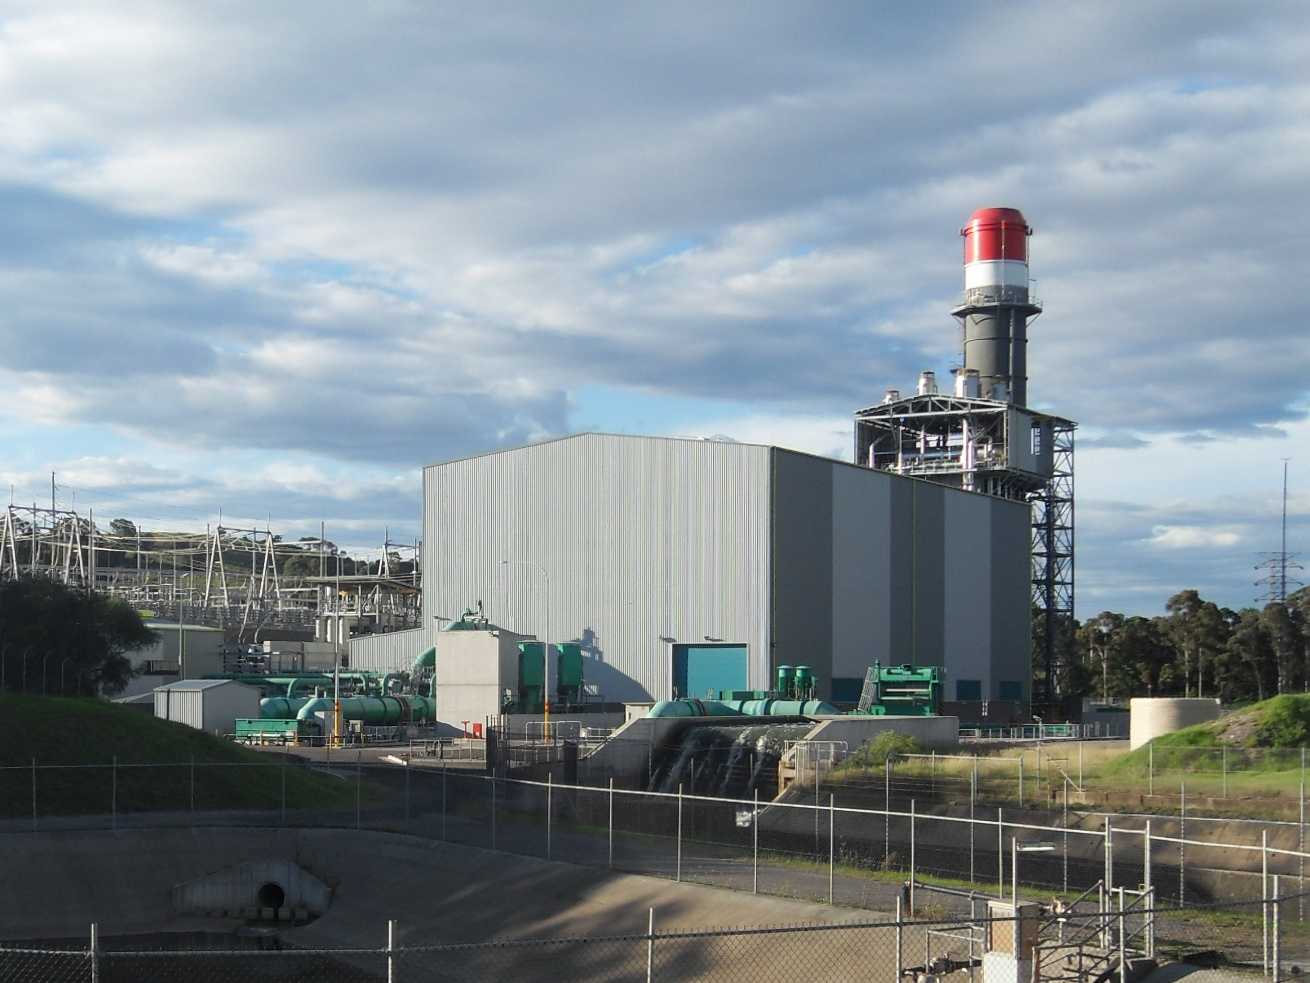 The existing Tallawarra Power Station (pictured) will be expanded with a new hydrogen and gas capable power plant